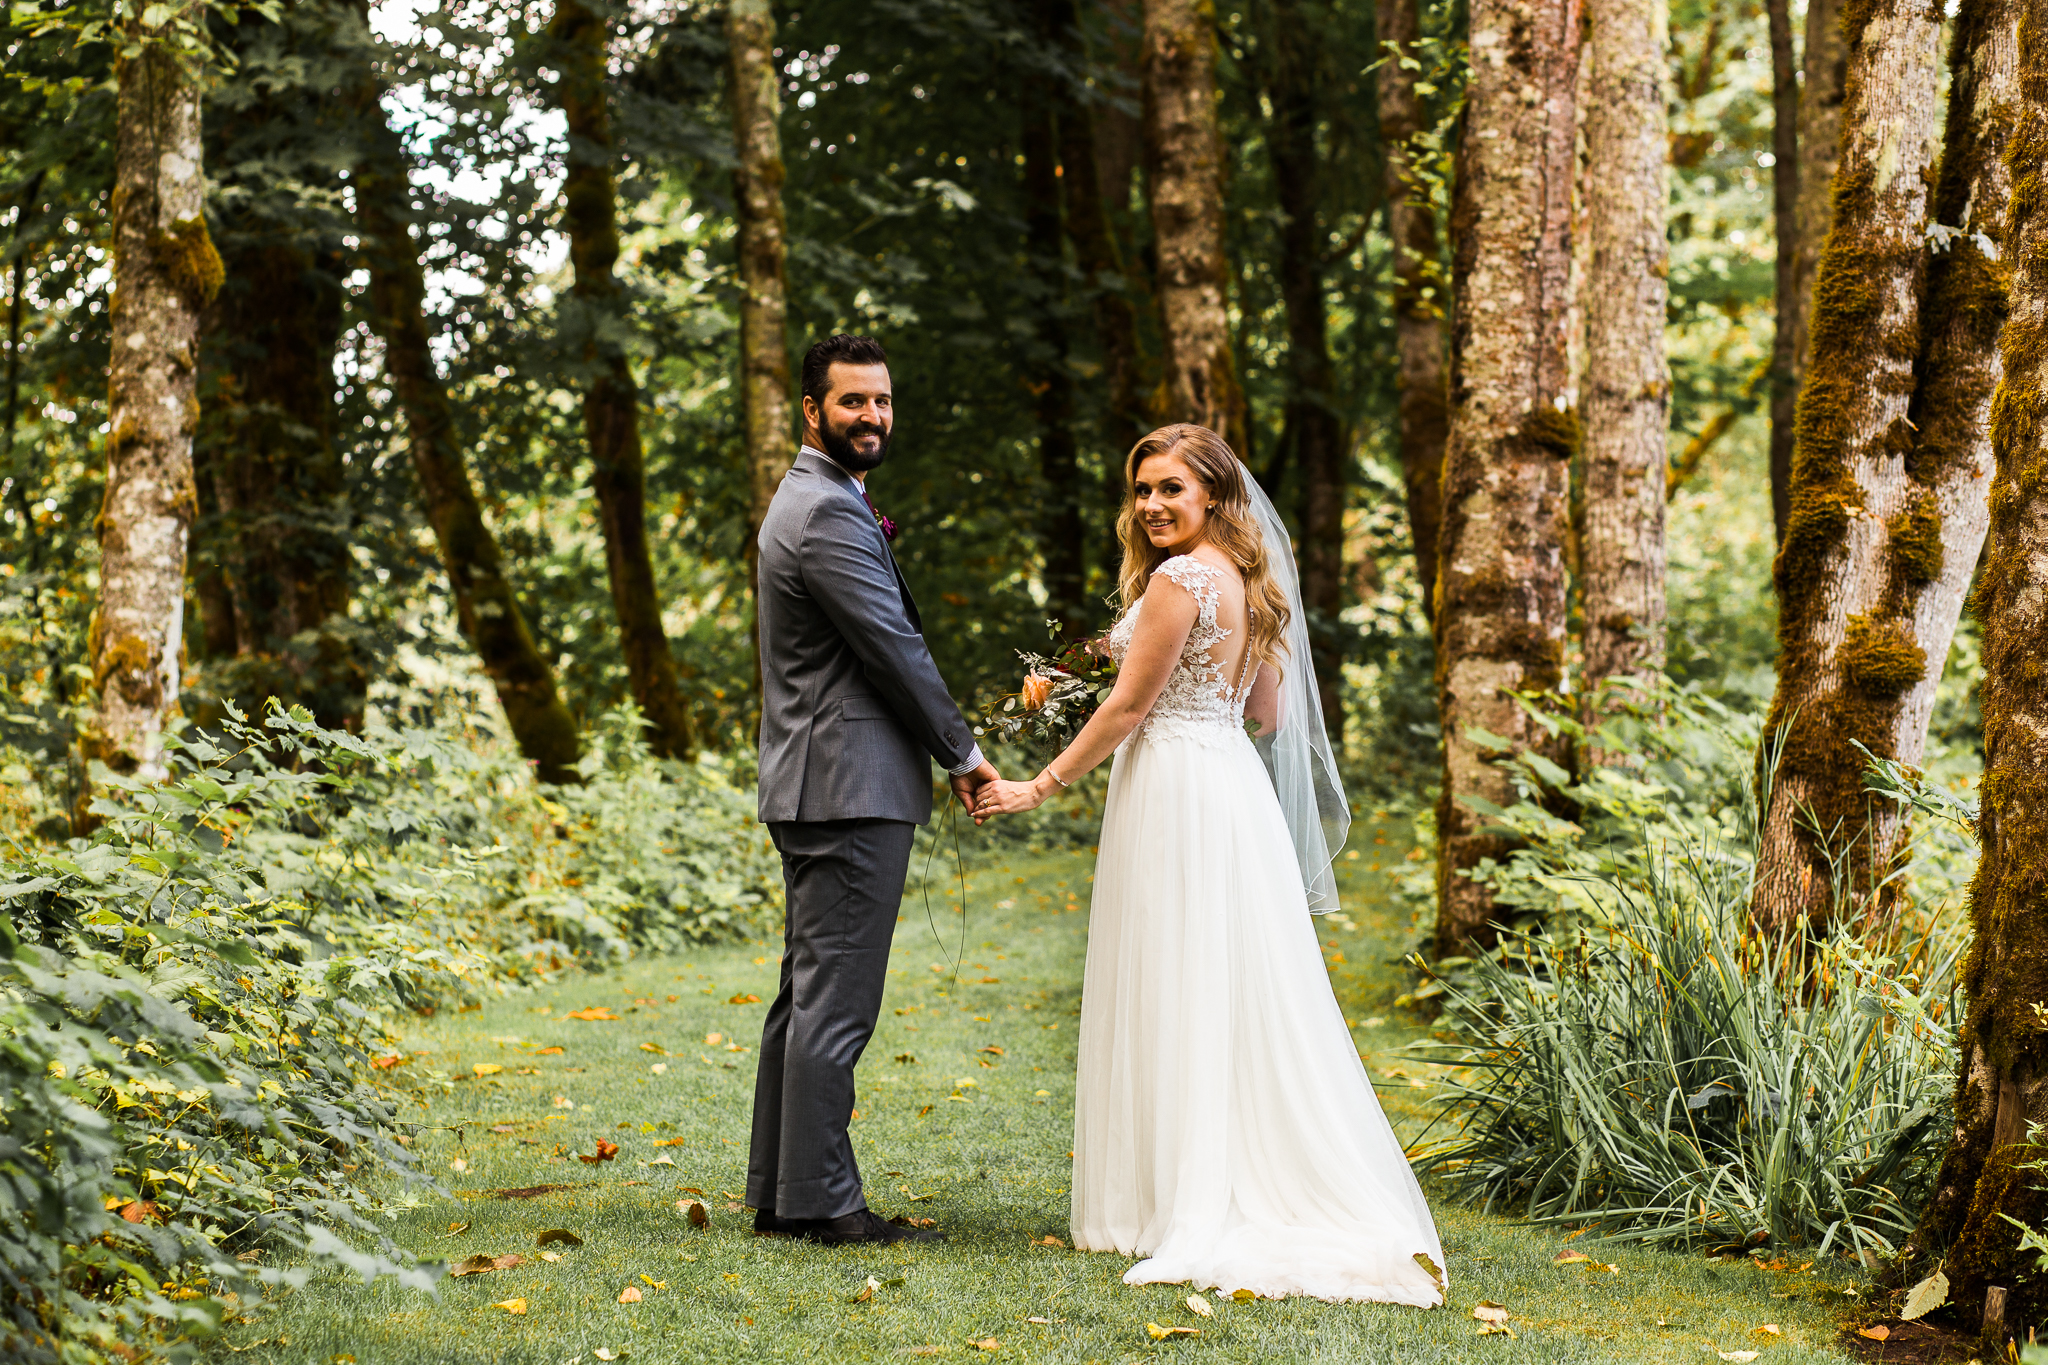 Alayna & Eric - wedding -  Bridal Veil Lakes, OR - Malina Rose Photography-38.jpg